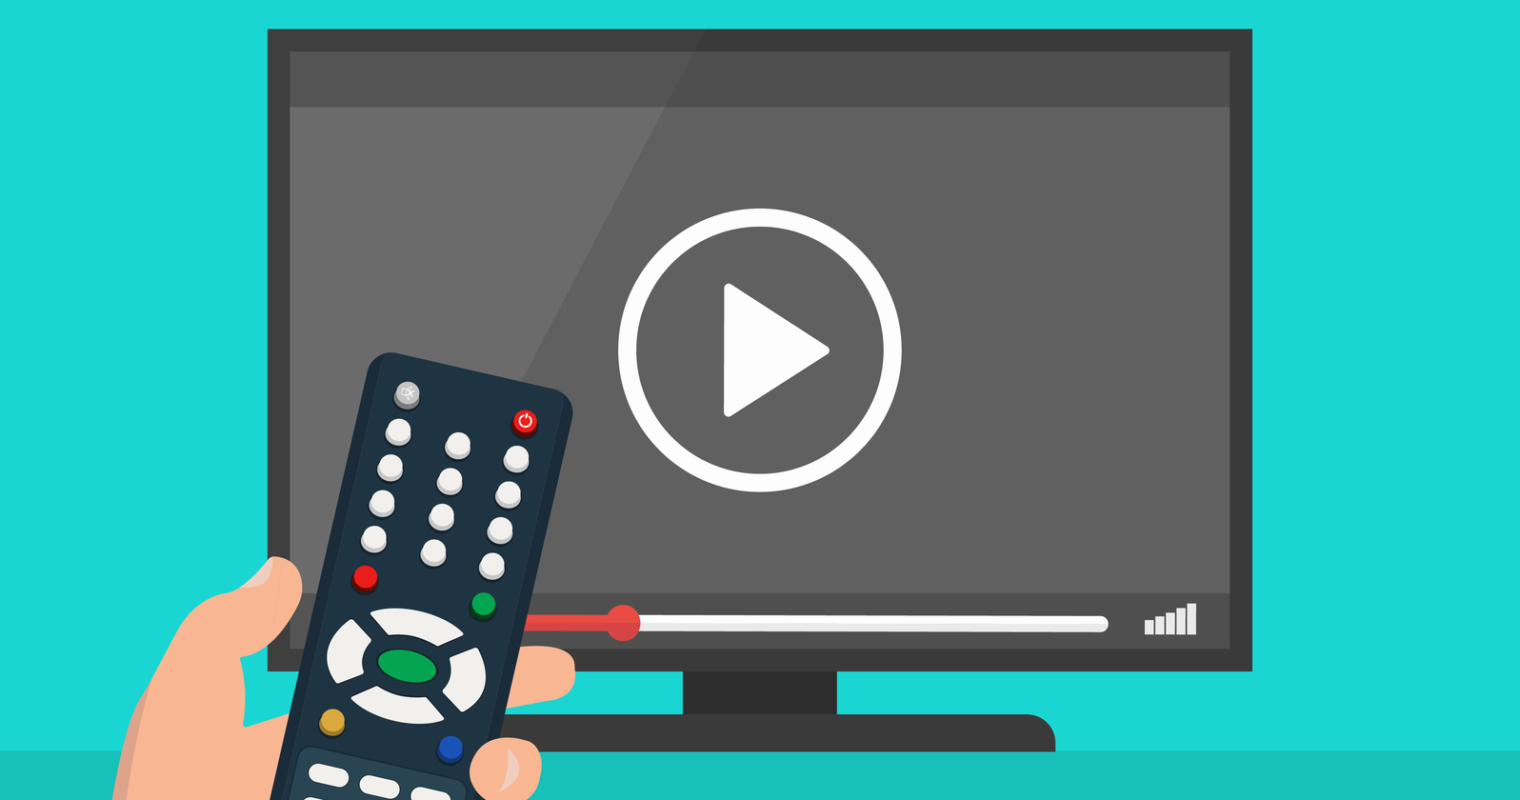 Google Highlights 3 Ways YouTube Viewing Habits Are Changing